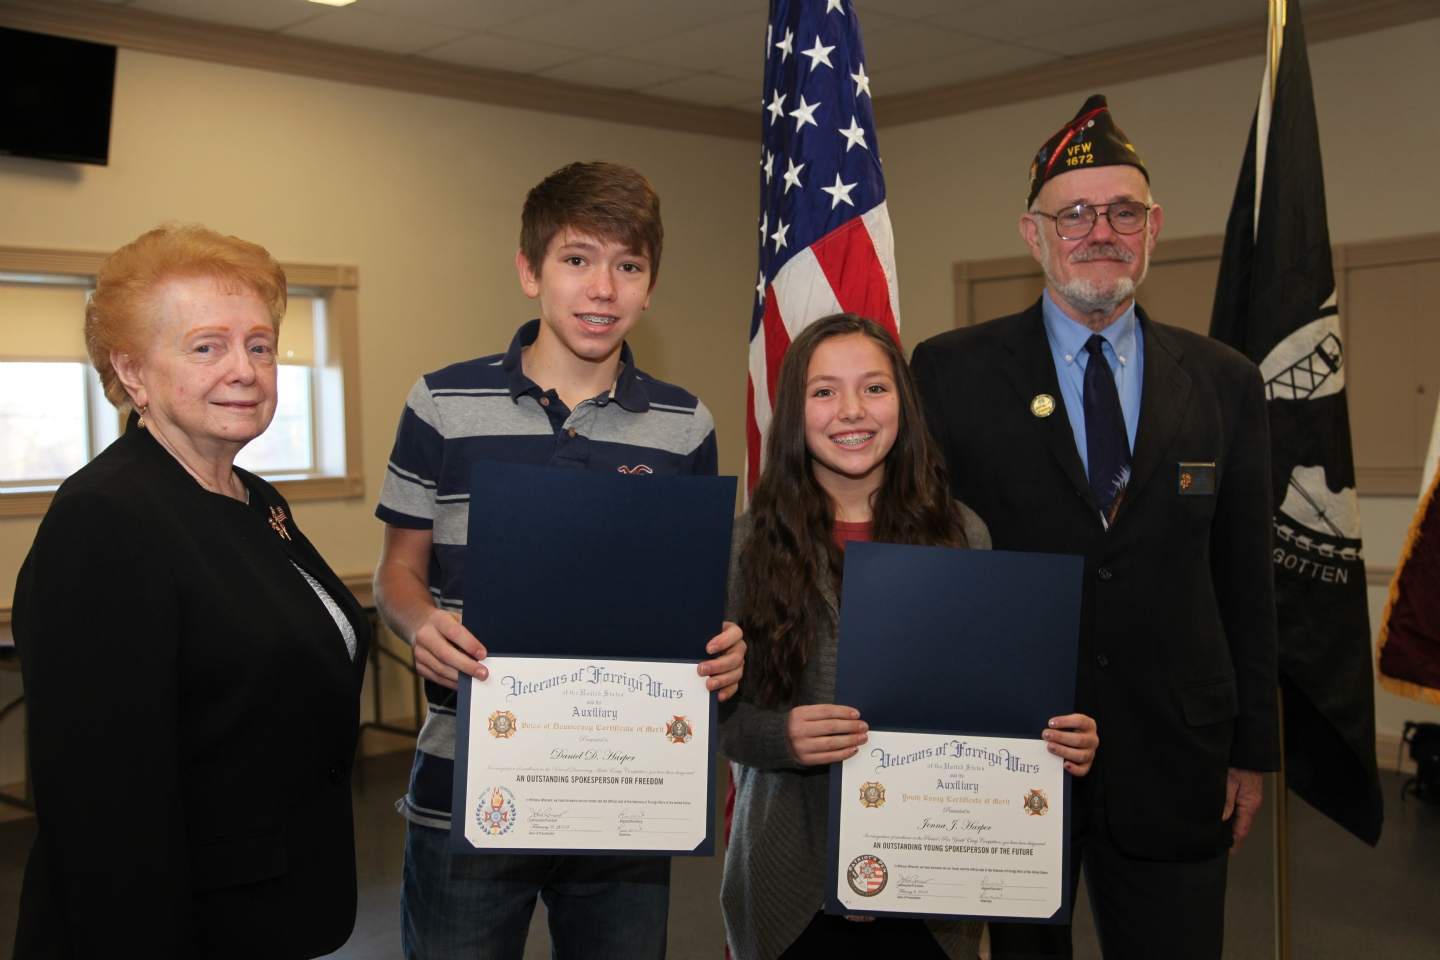 Siblings Daniel Harper, a 9th grade home schooler and his sister, Jenna Harper, an 8th grade home schooler, both of East Hartford, won Third and First places, respectively, in the two essay contests.